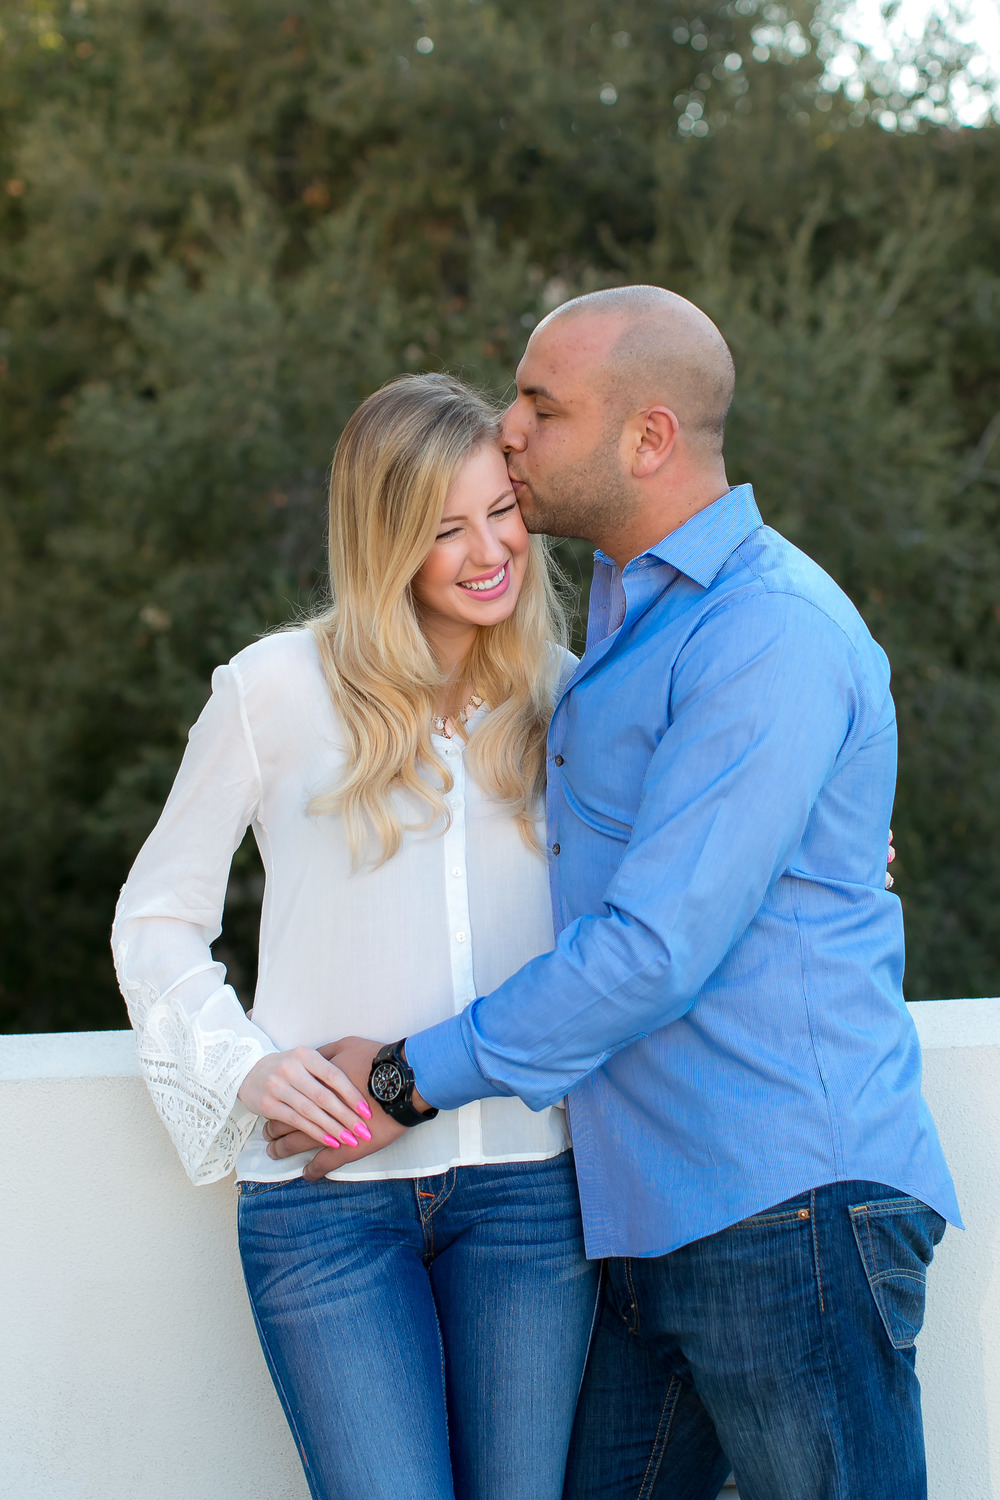 pasadena-city-hall-engagement-session_003.jpg